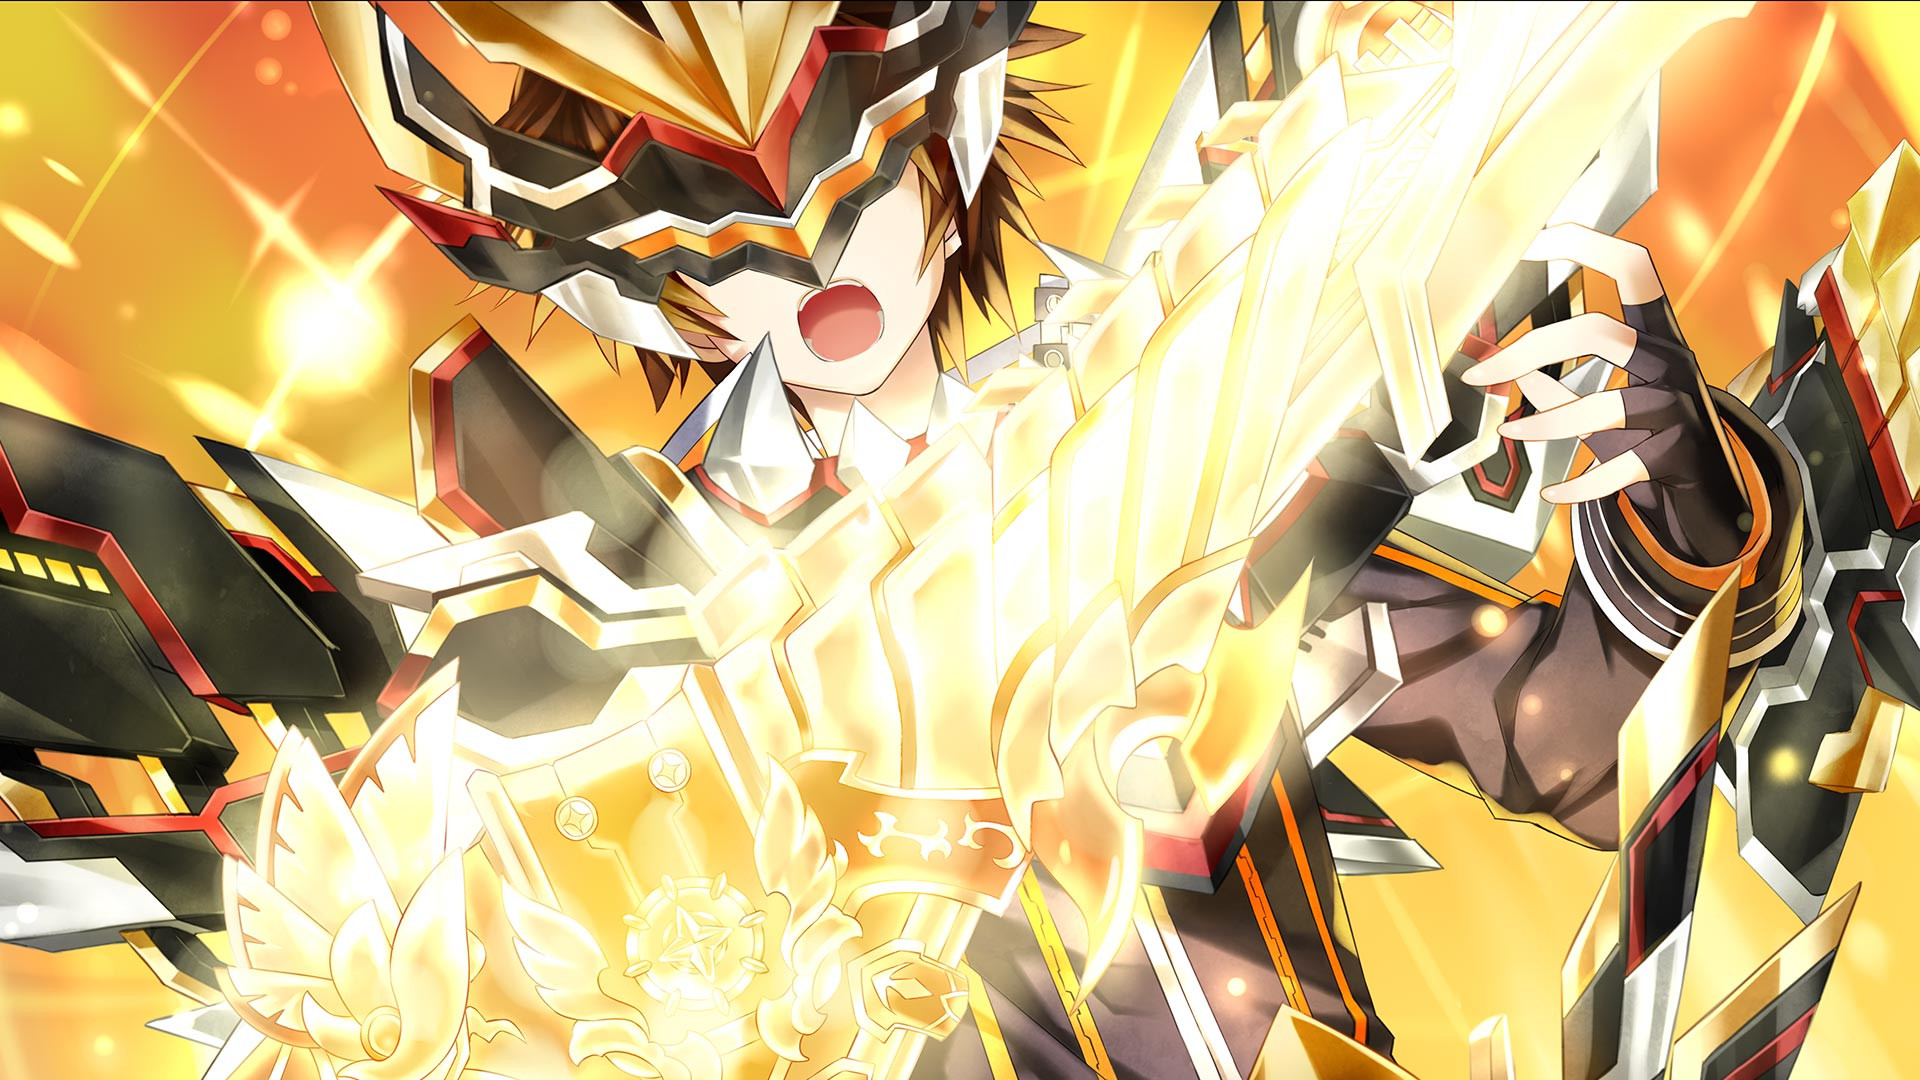 Fairy Fencer F Advent Dark Force Wallpaper 014 Fang Faerized